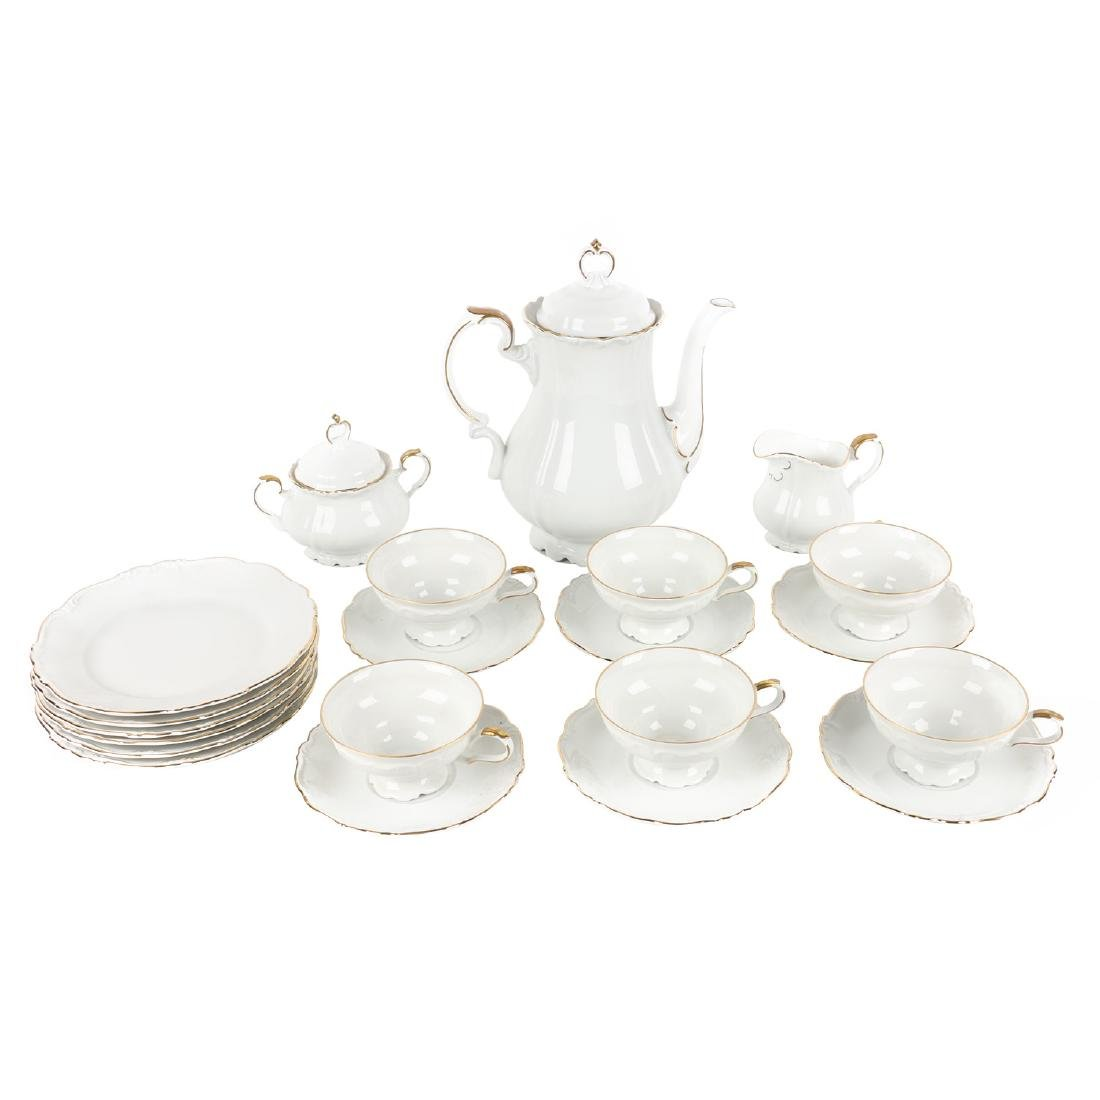 Edelstein China Tea Service